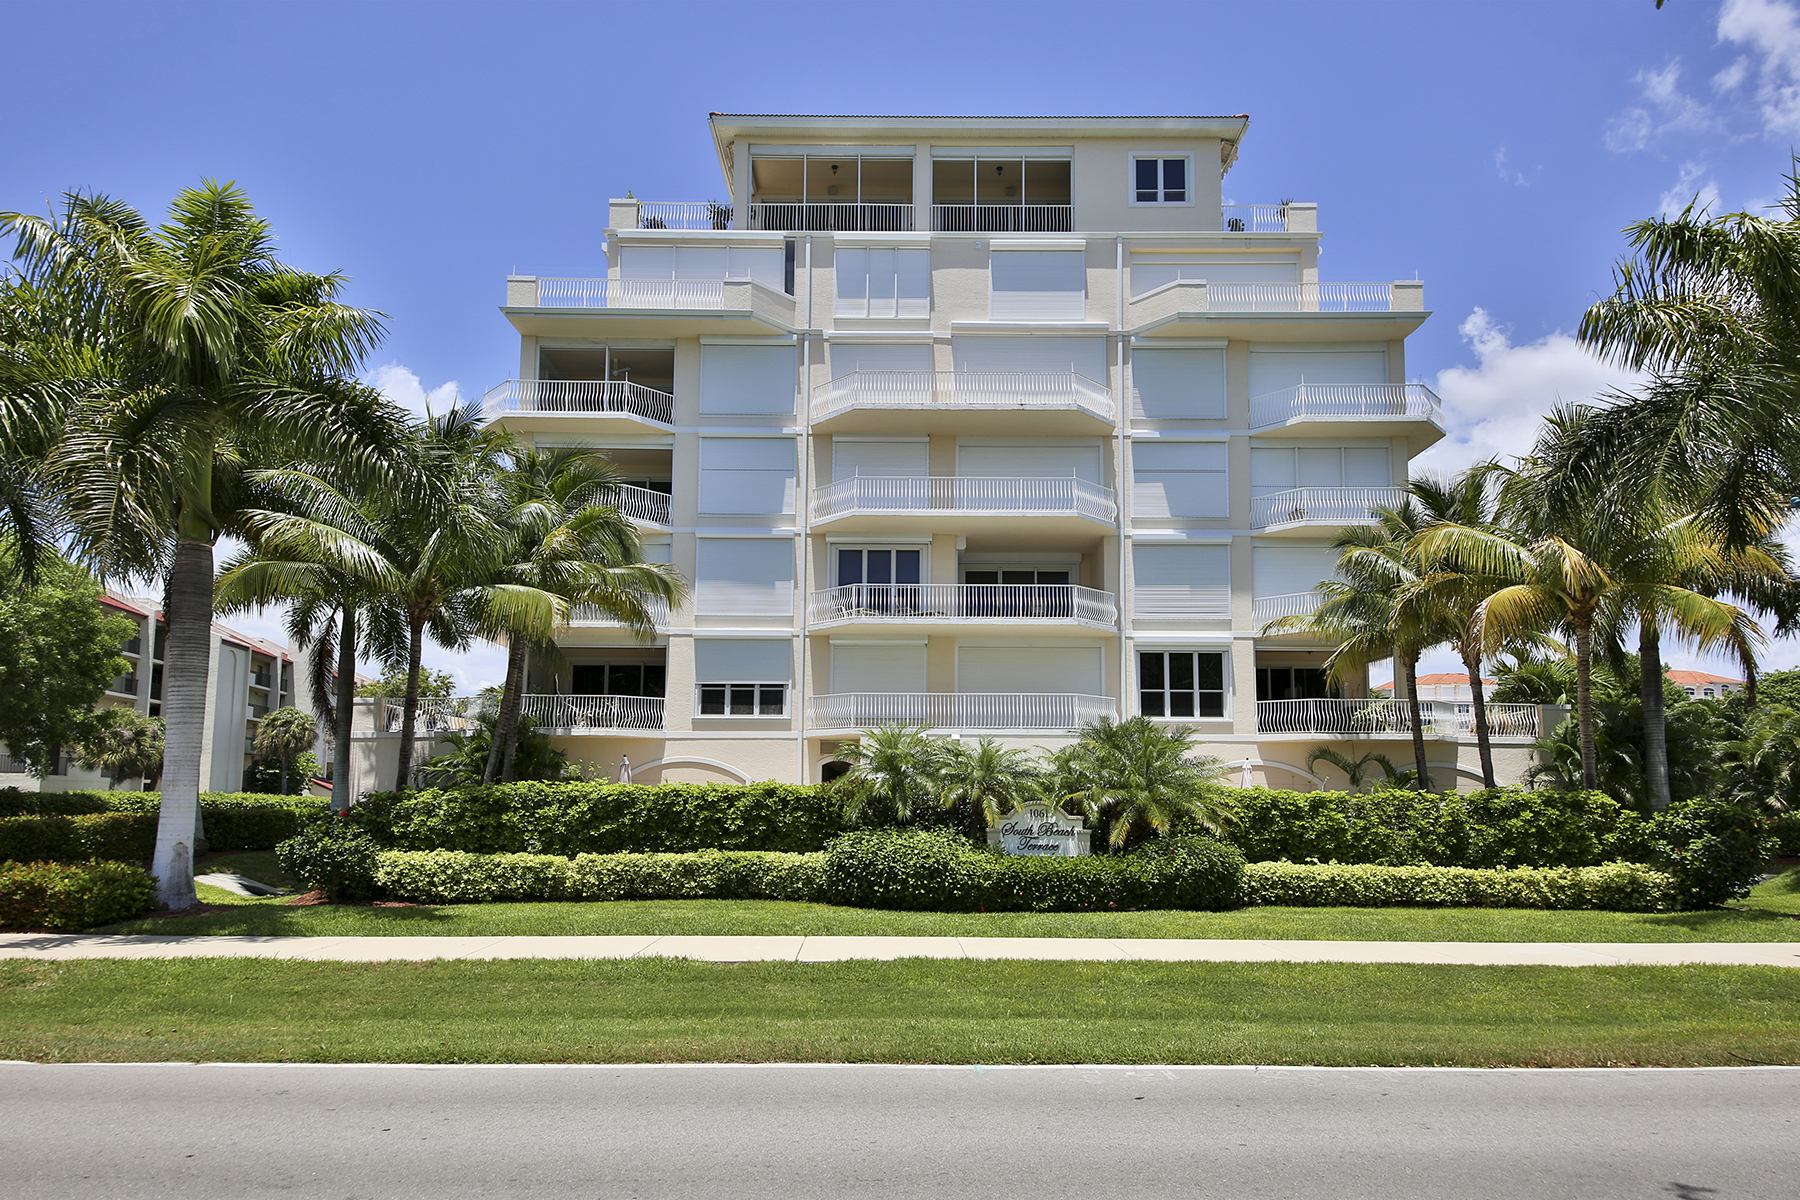 sales property at 1061 S Collier Blvd , 401, Marco Island, FL 34145